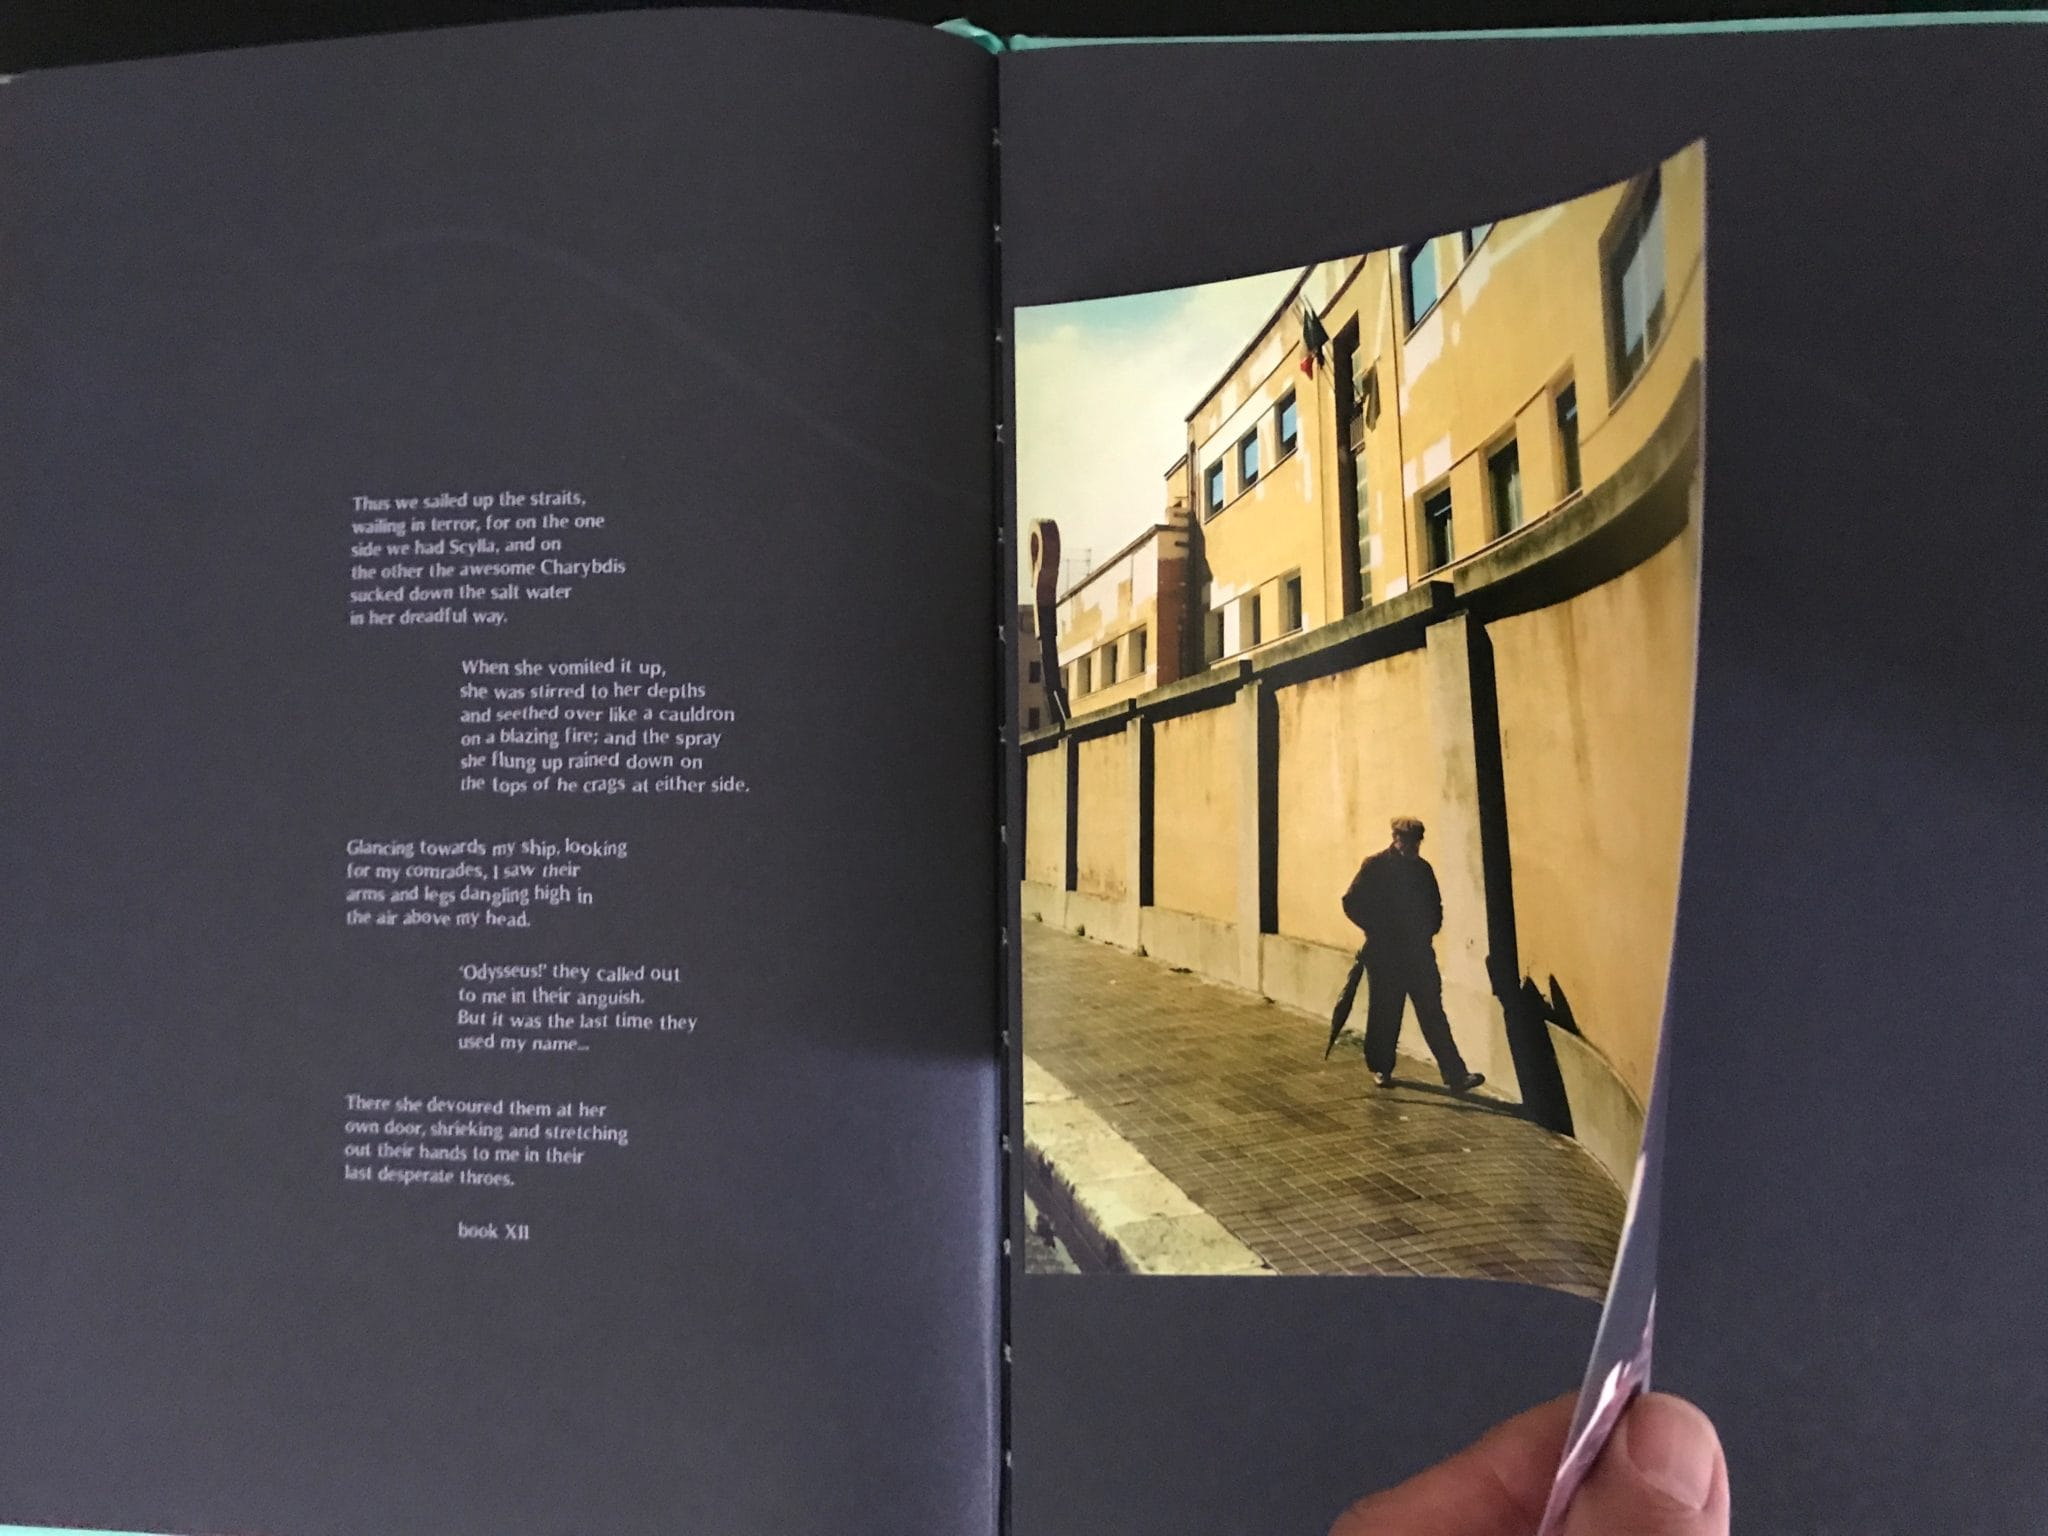 #Idssey by Stefano De Luigi a limited edition of 500 copies numbered by the artist, include a signed c print. A double page of the photobook, fantastic design, text by Laura Serani.  Editions Bessard available on our website Now! here the link: http://www.editionsbessard.com/product/idyssey-limited-edition-of-500-copies-signed-c-print/